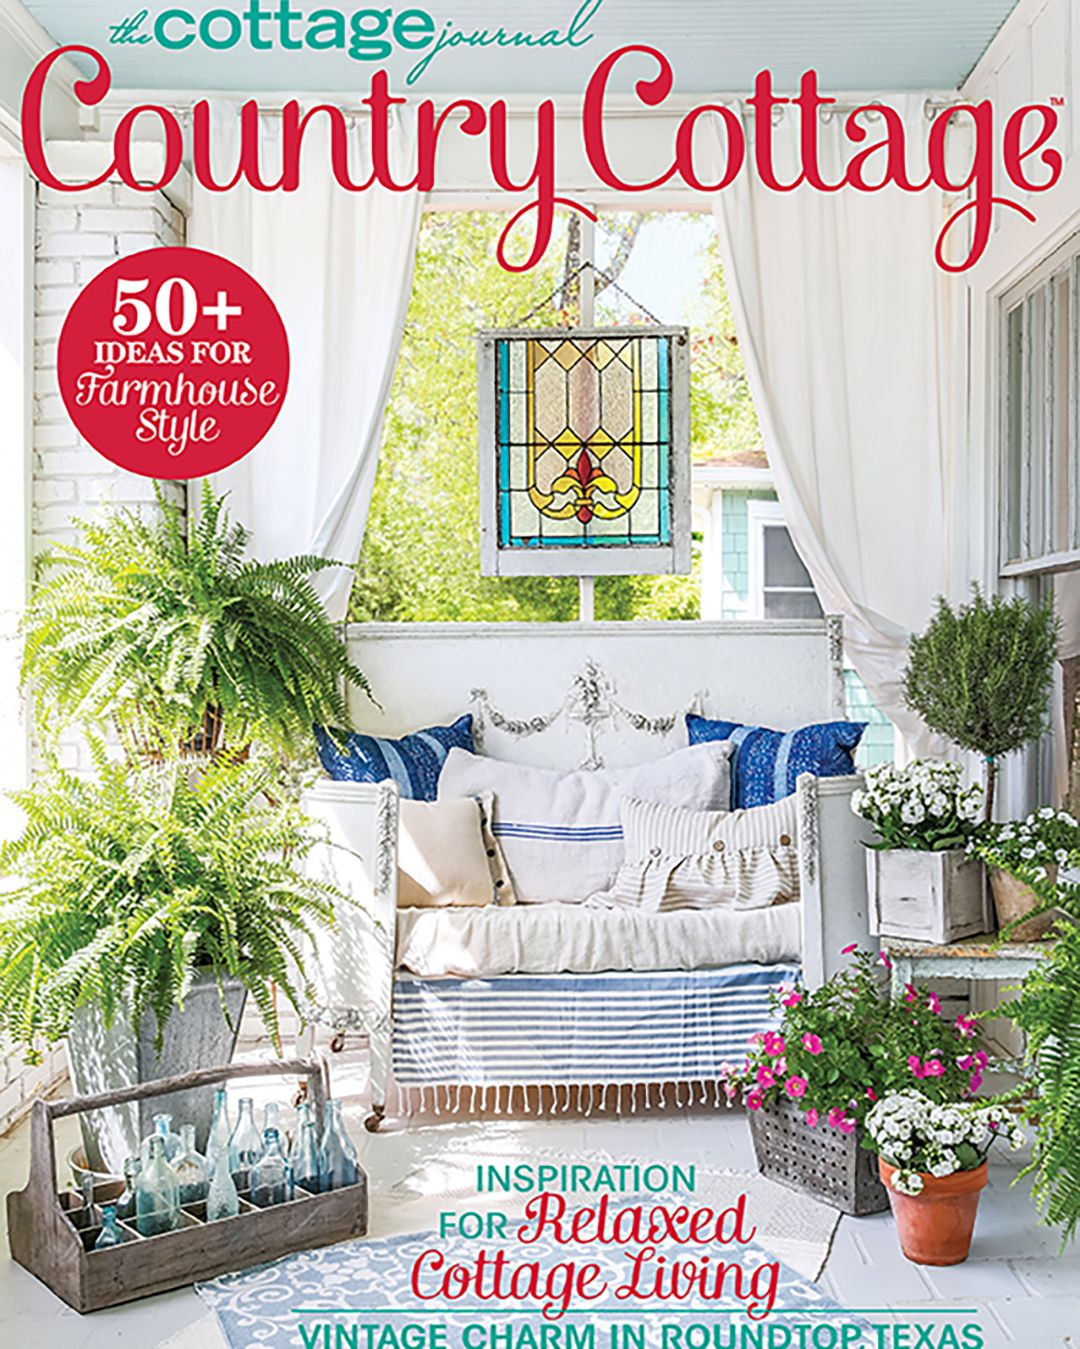 Plenty Of Greenery And Cozy Linens Are The Keys To Our Dream Porch Want To See More Pick Up A Copy Of Our Country Cottage Decor Country Decor Catalogs Decor